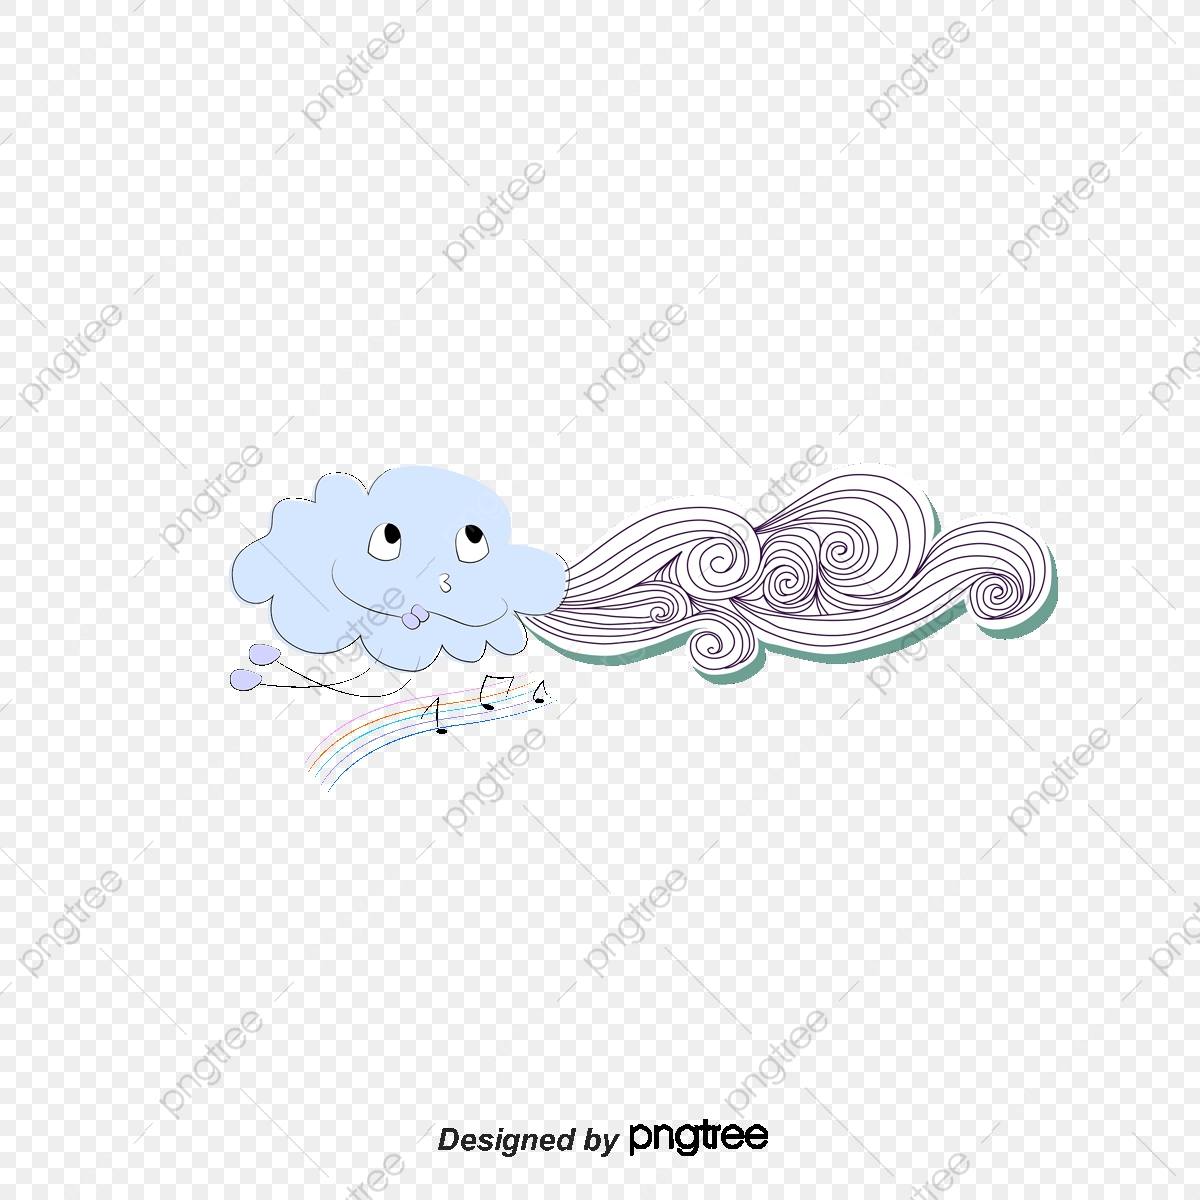 Windy clipart strong wind. Clouds cloud lines winds